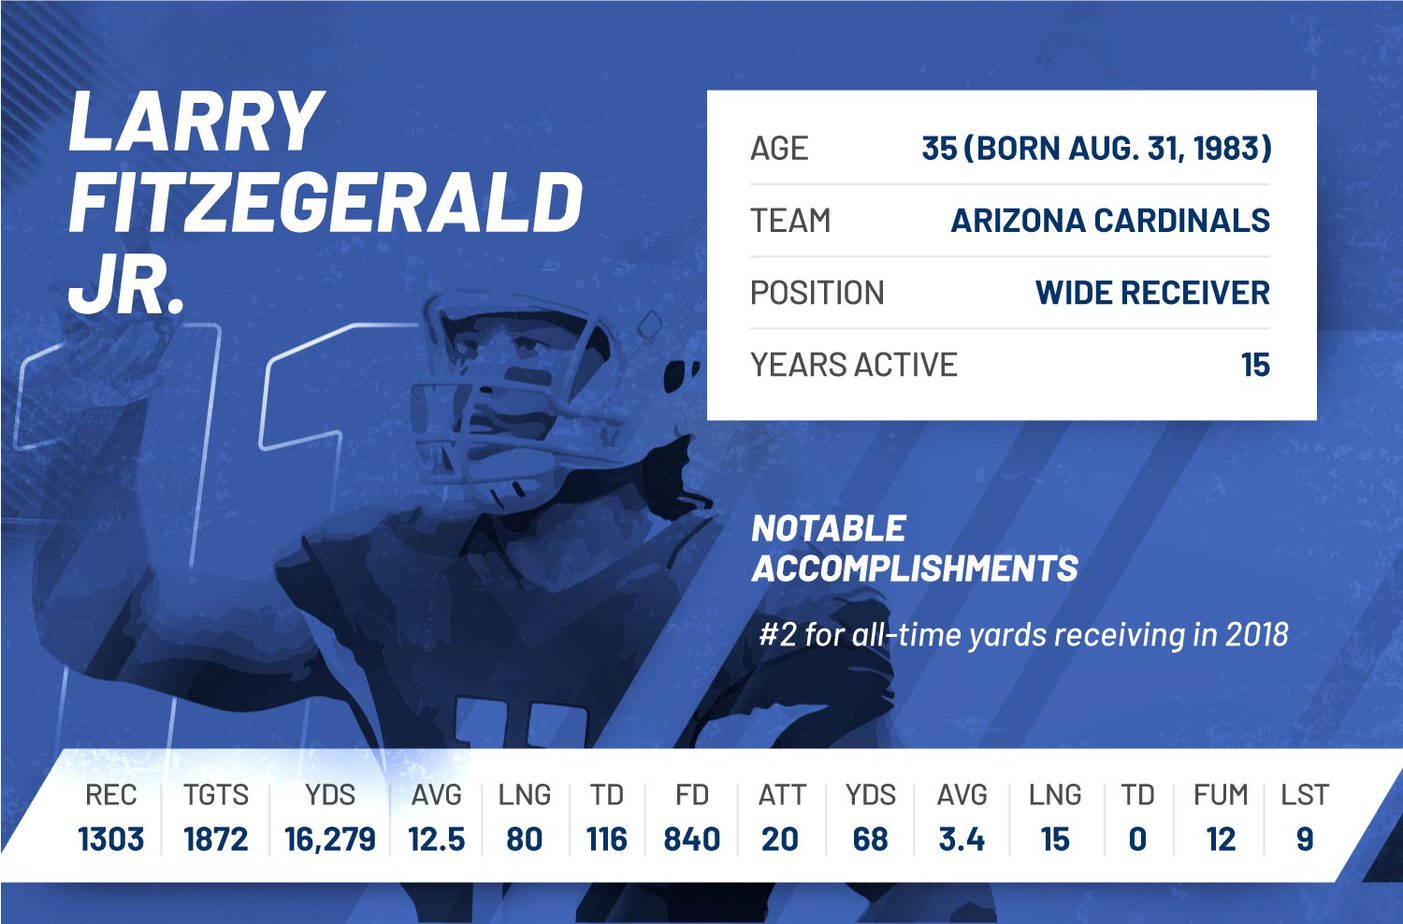 larry fitzgerald jr nfl 2018 regular season stats